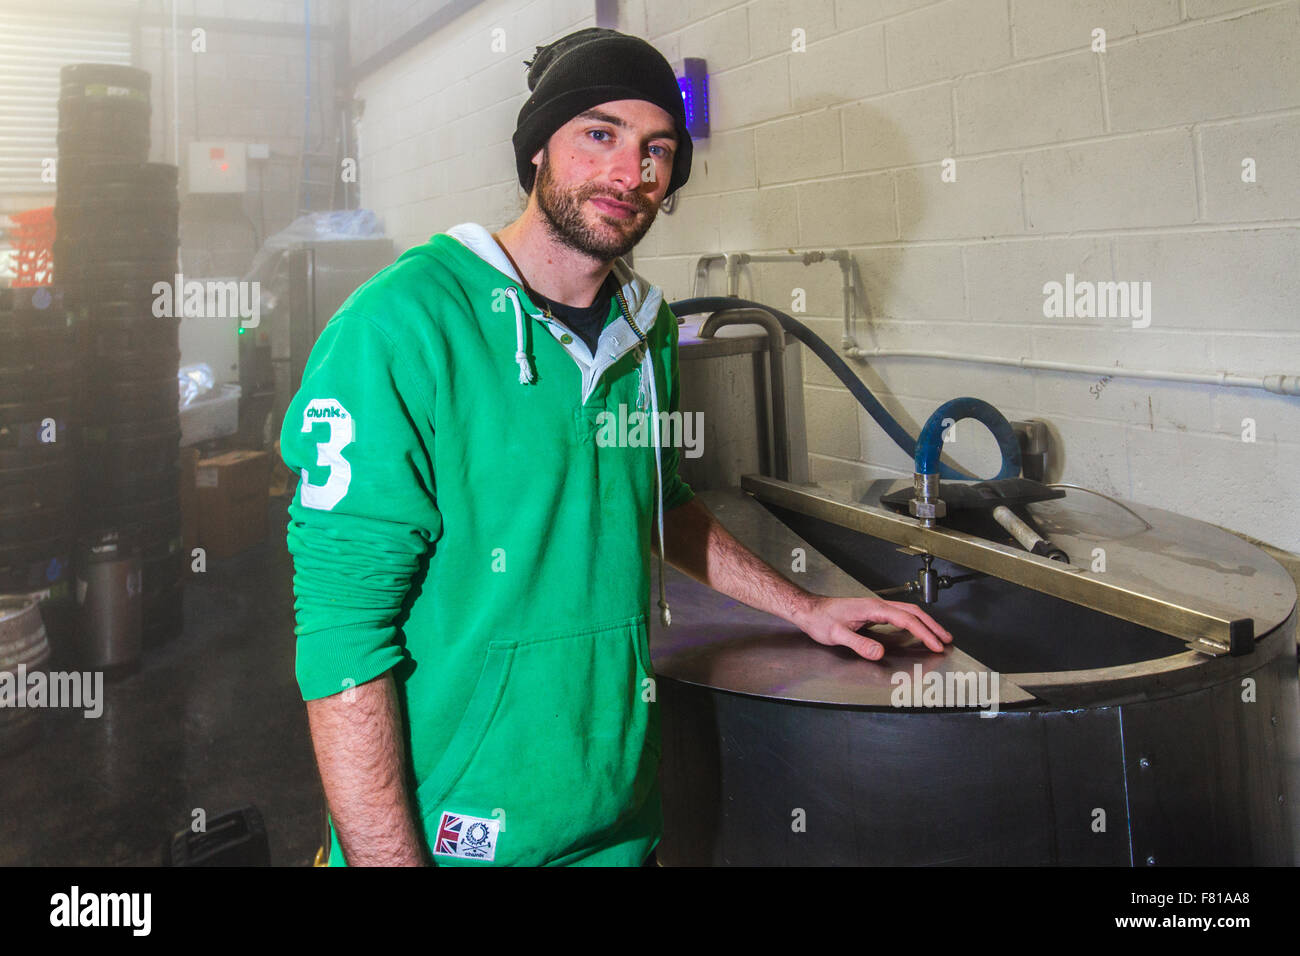 Cardiff, United Kingdom, November 26 2015. Brewer Adam stands by brewing equipment at the Crafty Devil Microbrewery, - Stock Image